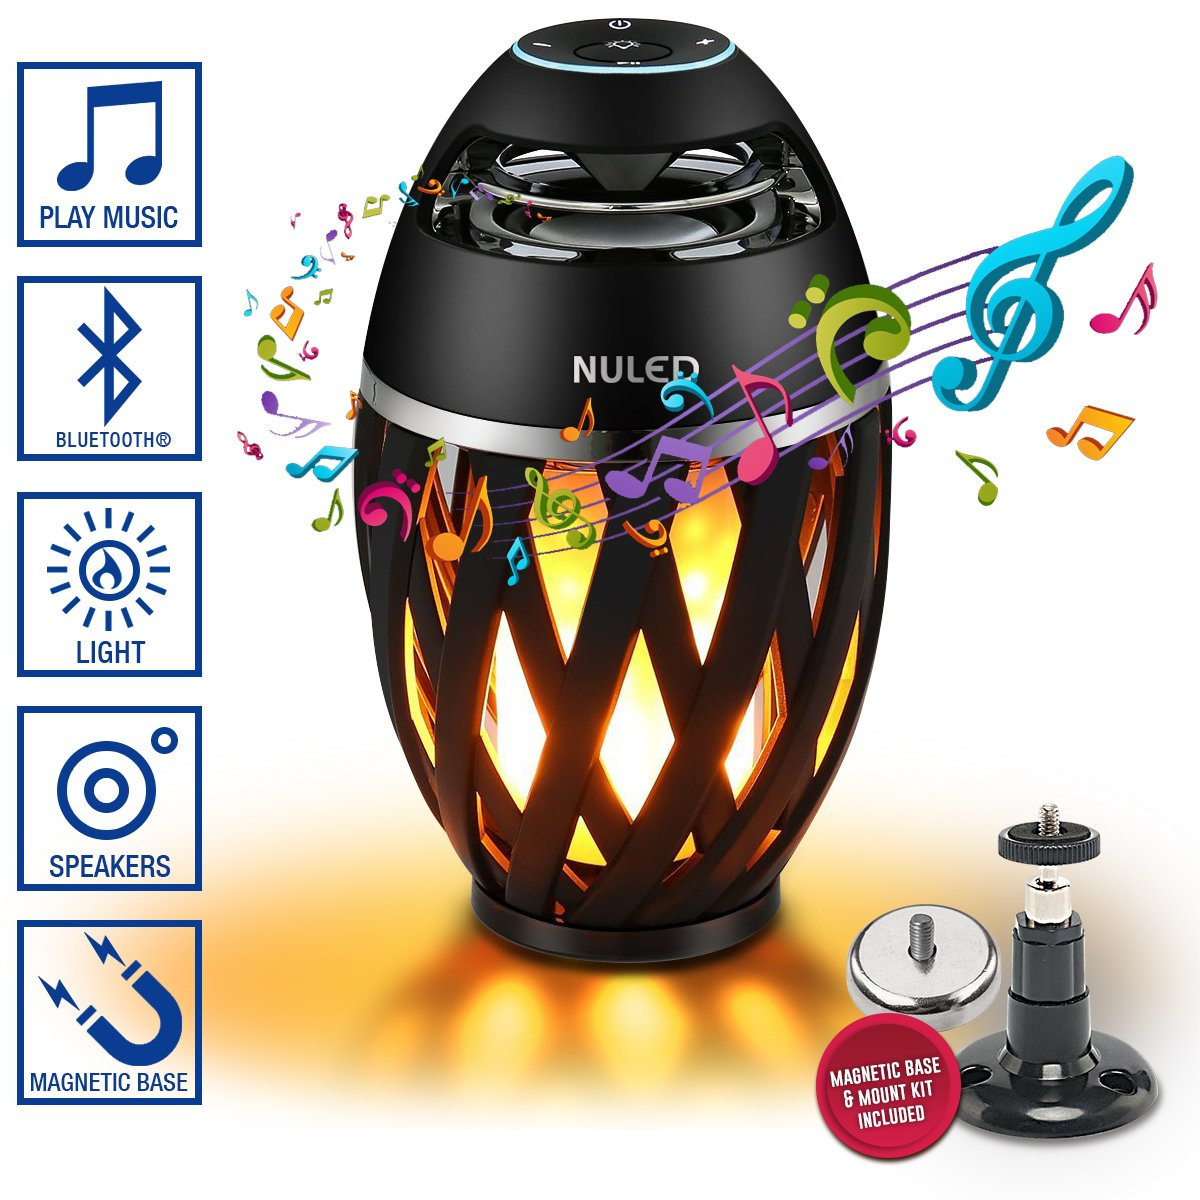 NULED Flame Speaker w. LED Atmosphere IP65 Waterproof 3600mAh Lithium Batteries Magnetic Base & Wall Mount Kit for Indoor/Outdoor Activities, Bluetooth Pair 2 for Stereo Sound